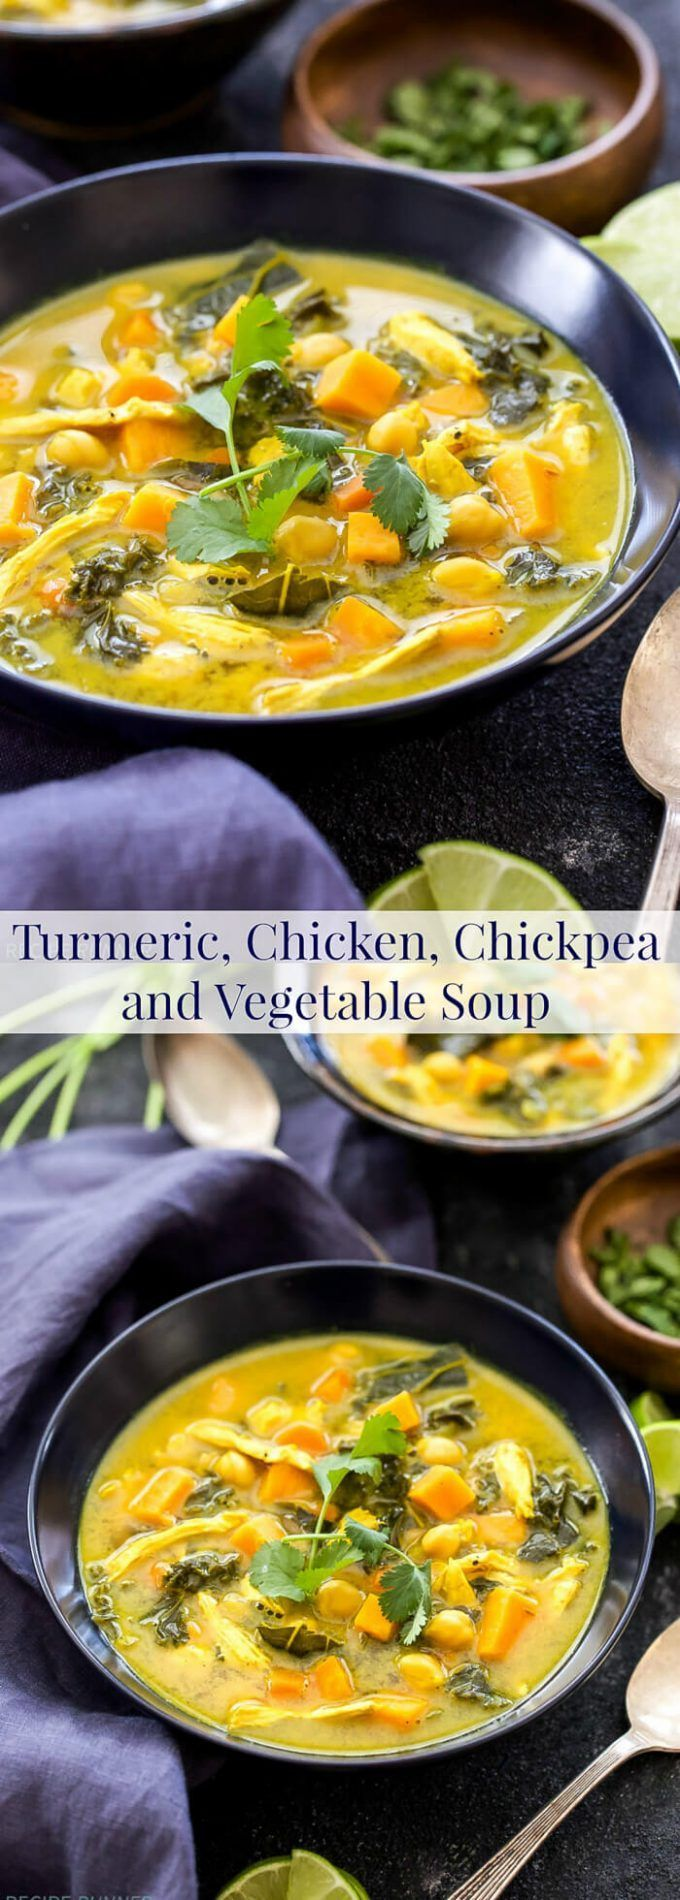 Golden yellow and loaded with superfoods! This Turmeric, Chicken, Chickpea and Vegetable Soup is perfect to make when you're feeling under the weather or just craving a flavorful and healthy soup!